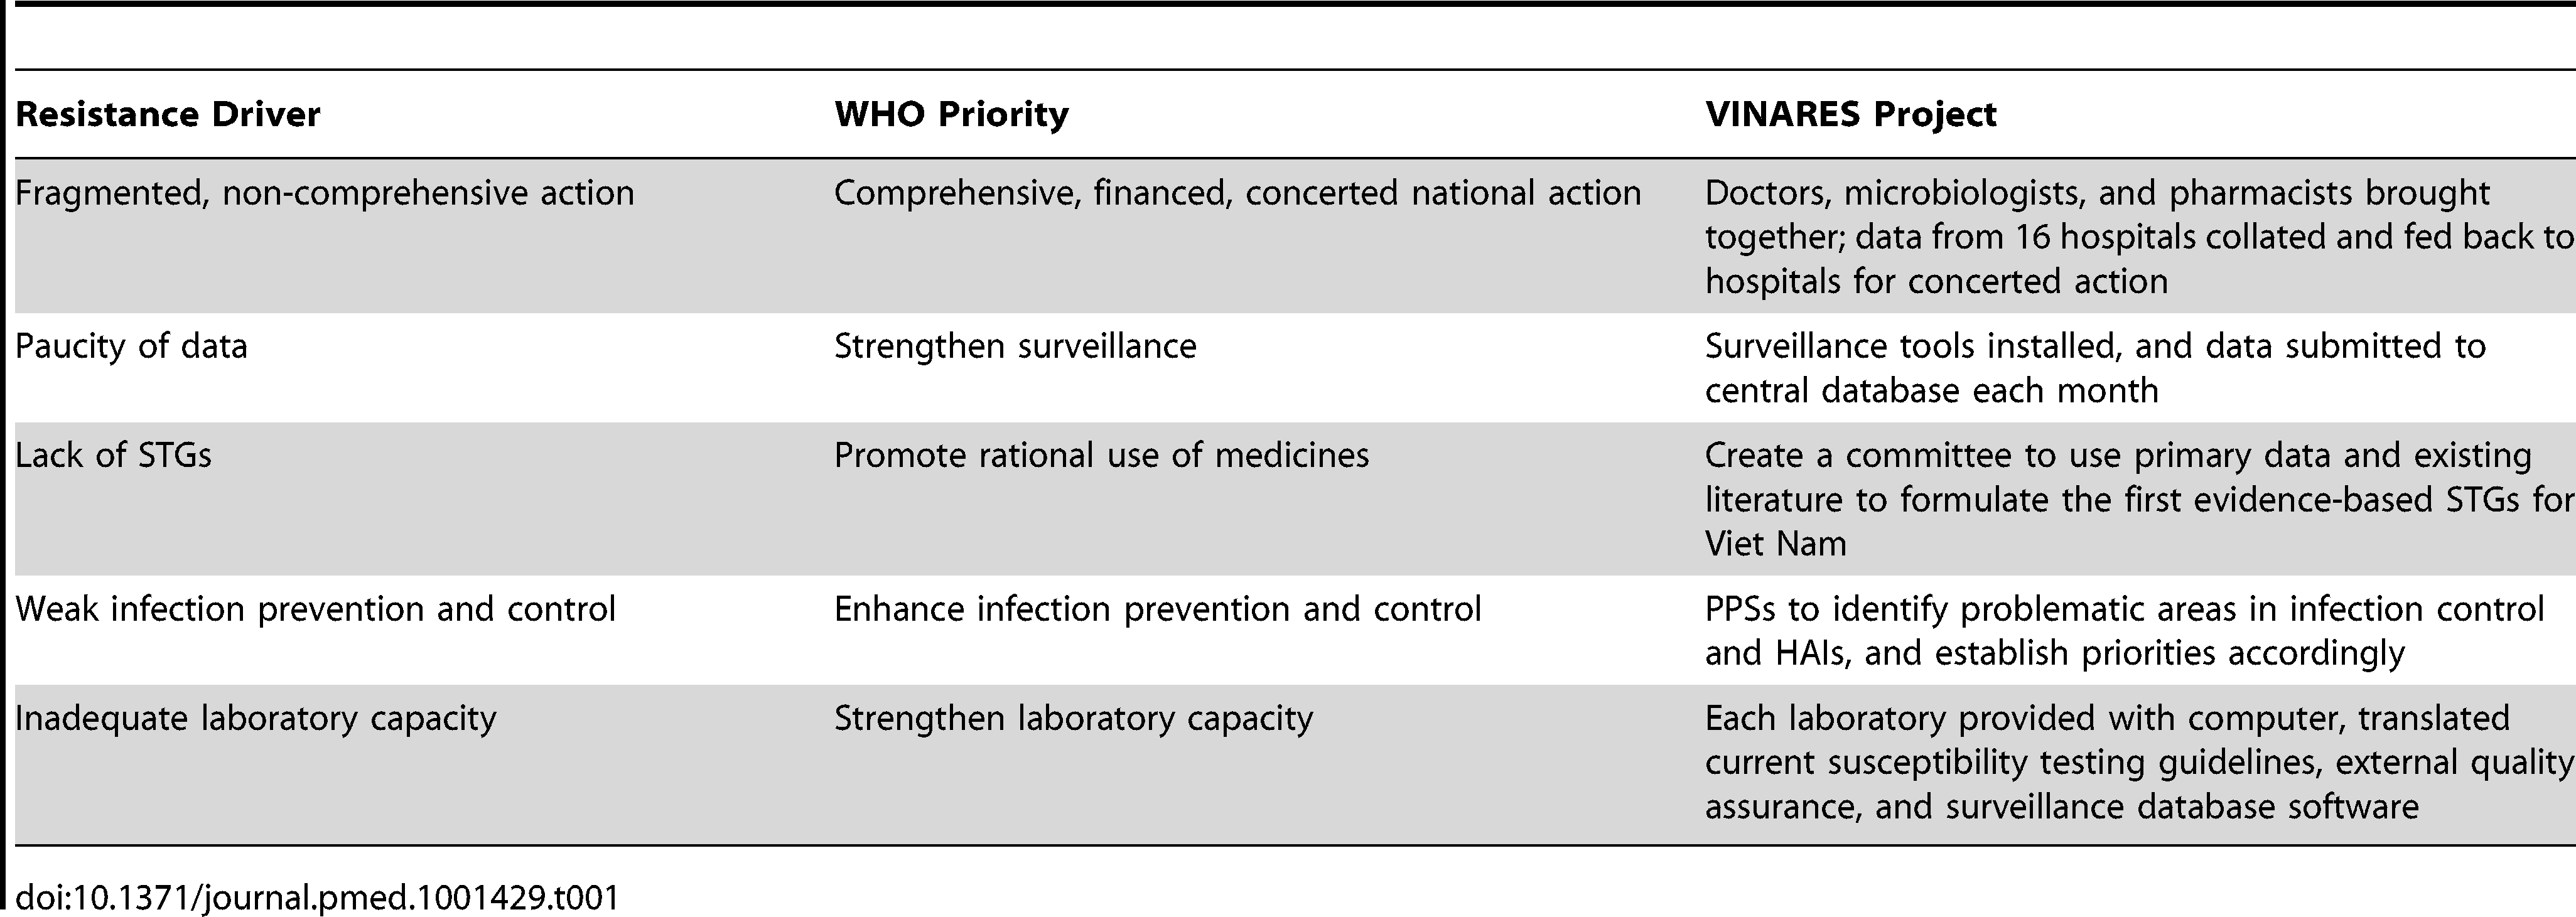 """Drivers of antibiotic resistance, hospital-related WHO policy package priorities, and how these are met by the VINARES project <em class=""""ref"""">[10]</em>."""